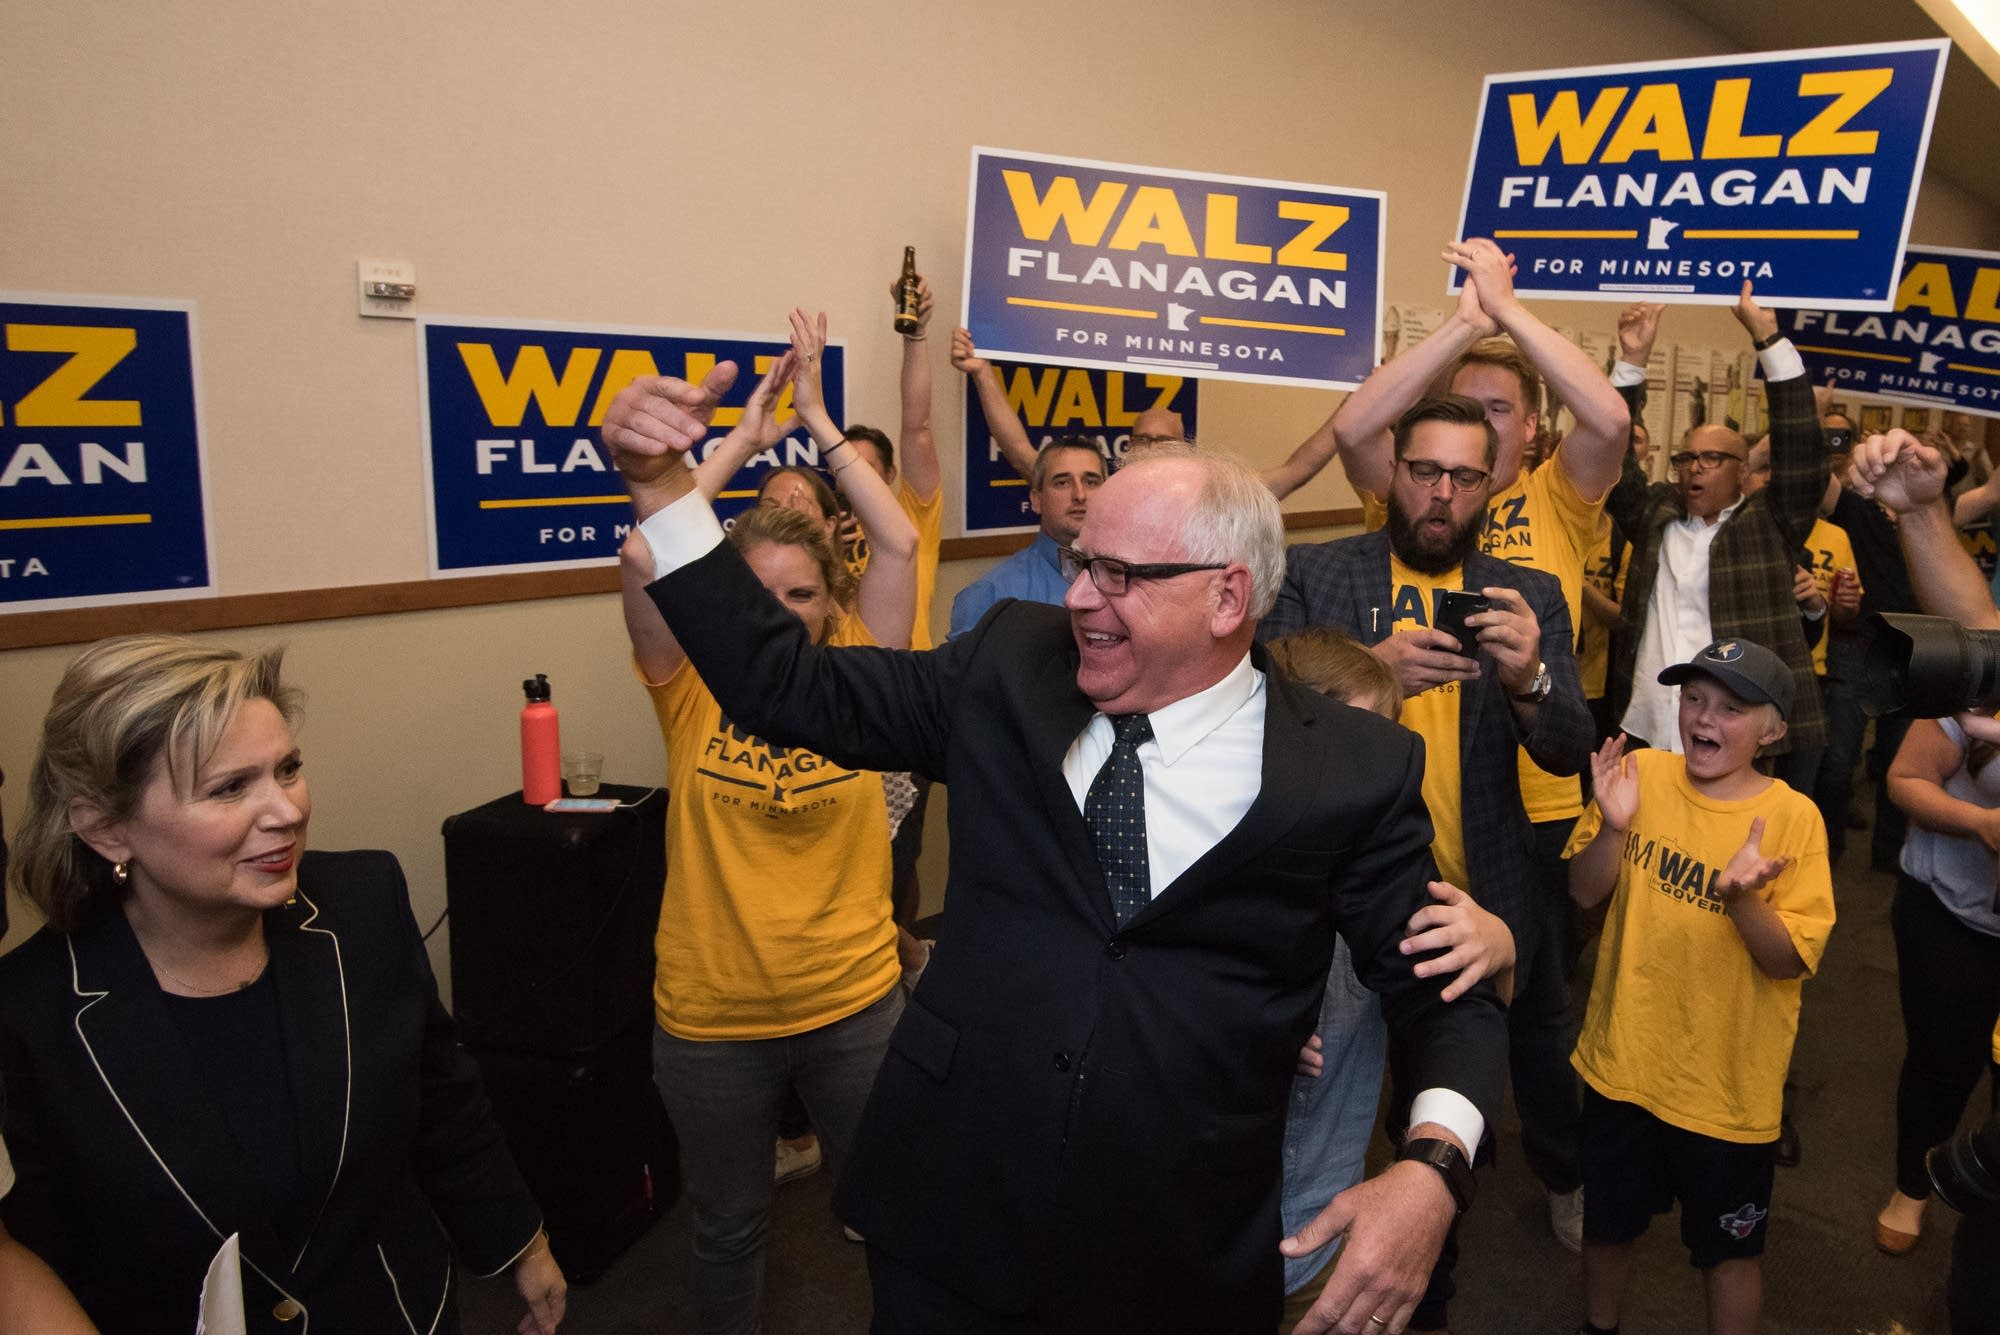 Walz comes out to give a victory speech while supporters cheer.